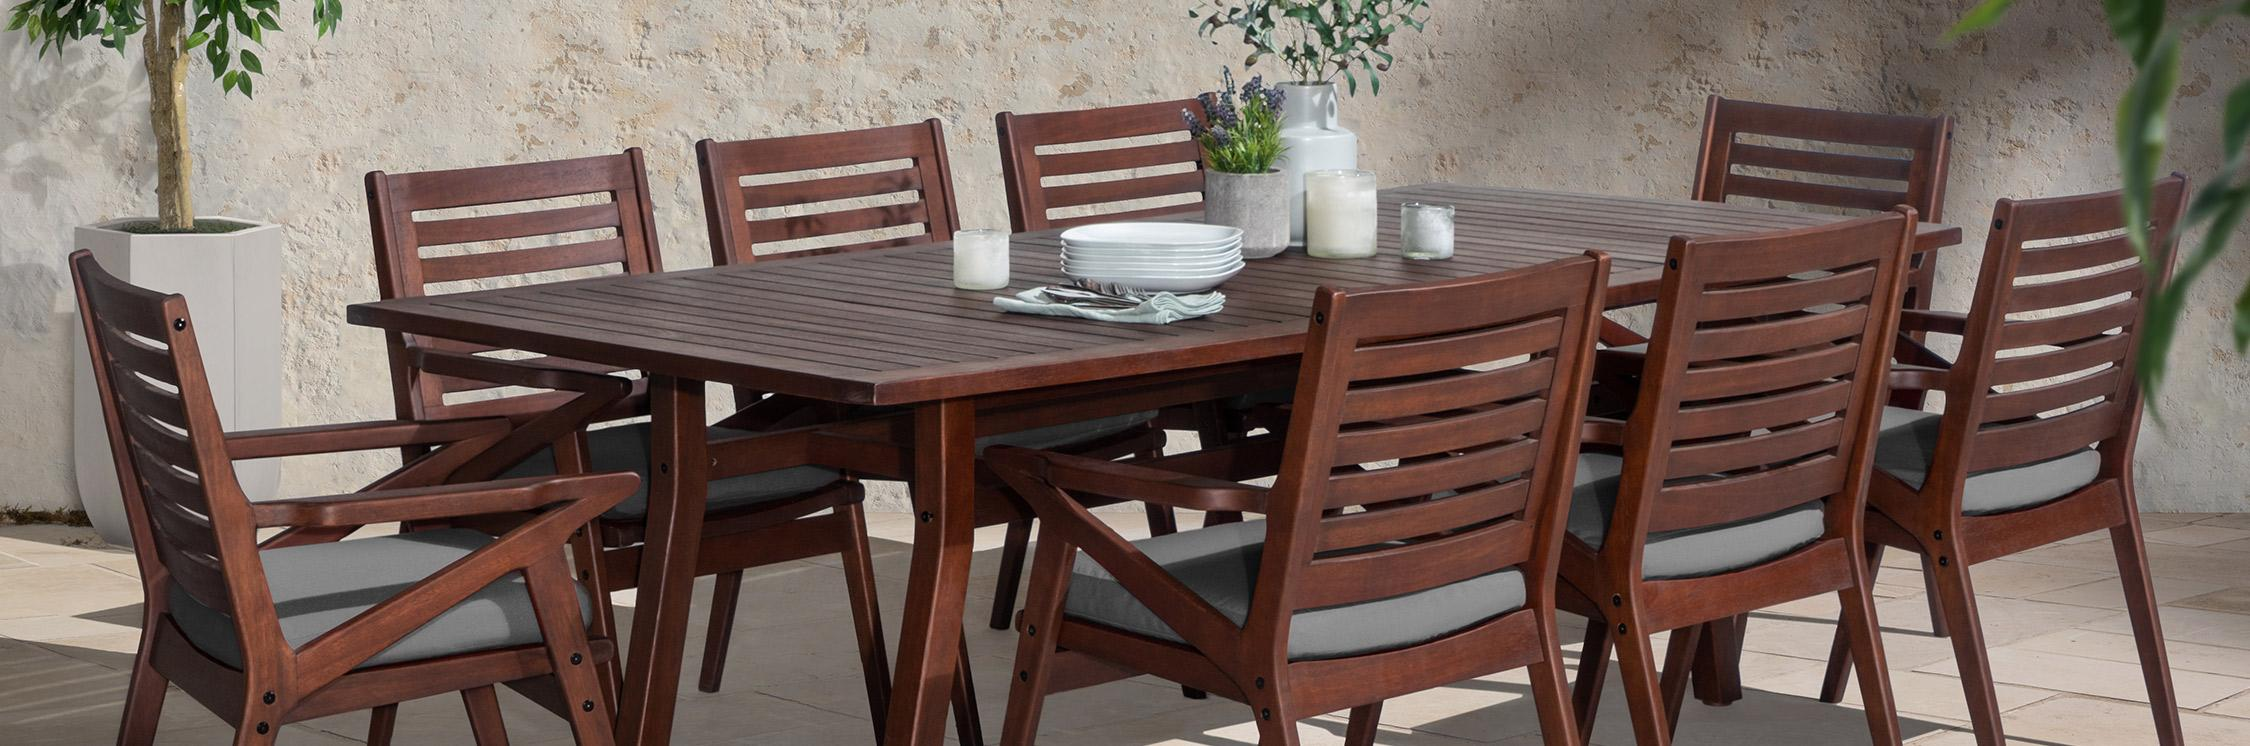 All-Weather Outdoor Wood Sets